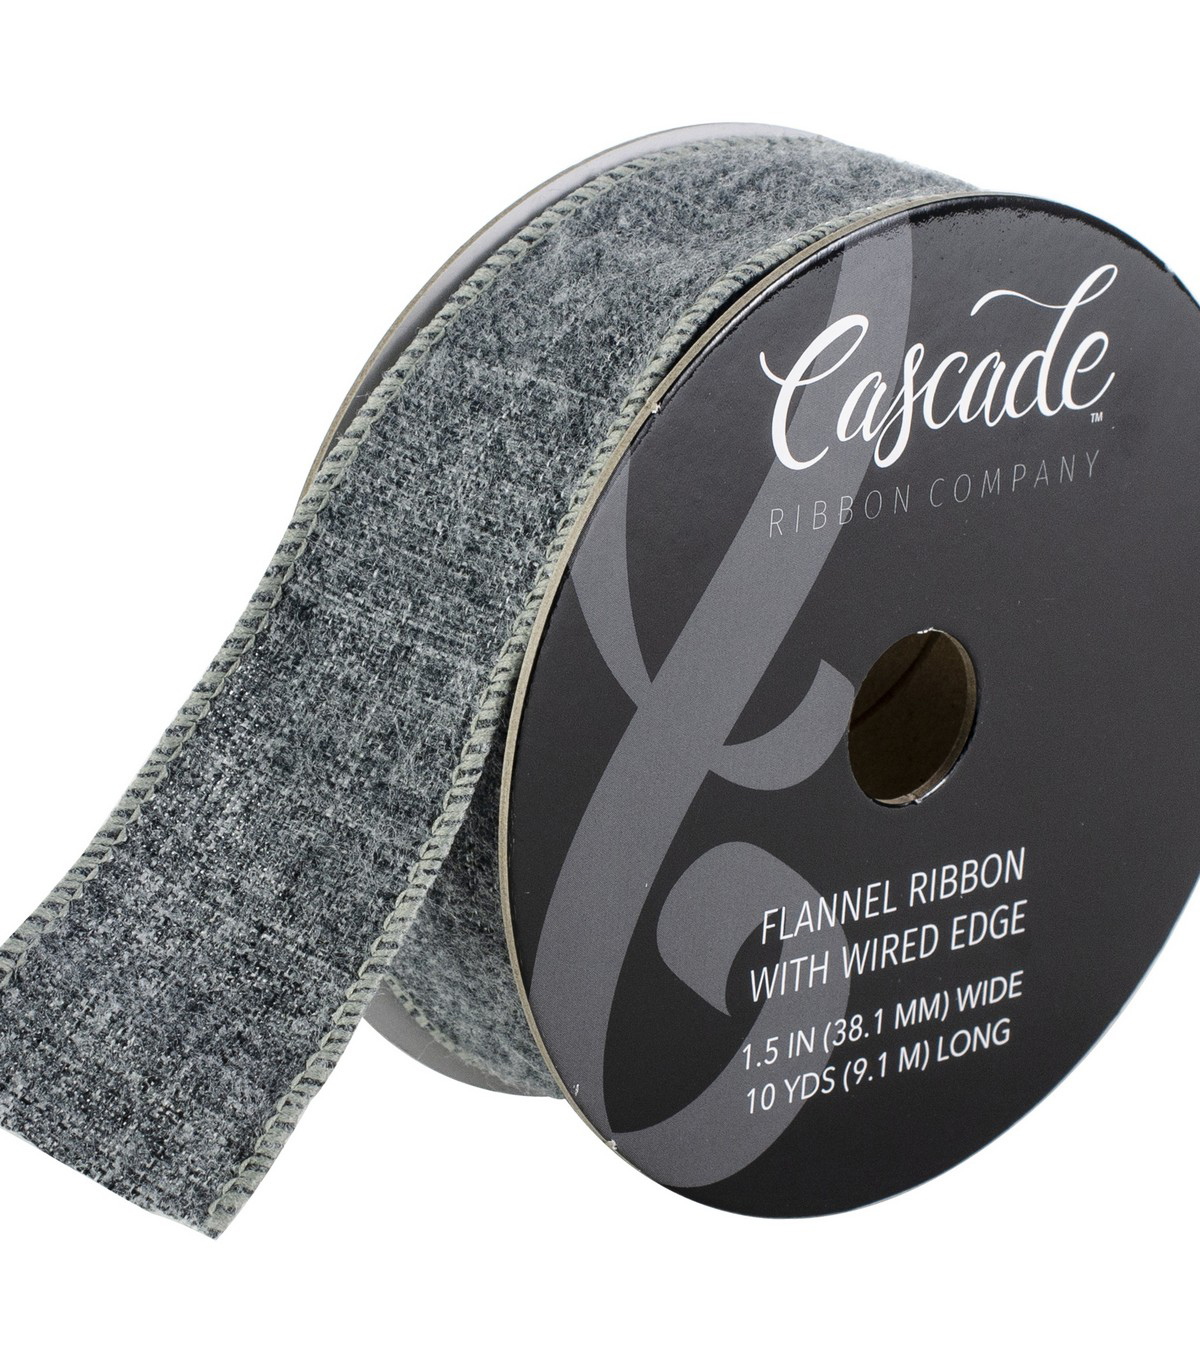 Cascade Flannel Ribbon with Wired Edge 1.5\u0022x10 yds-Heather Gray